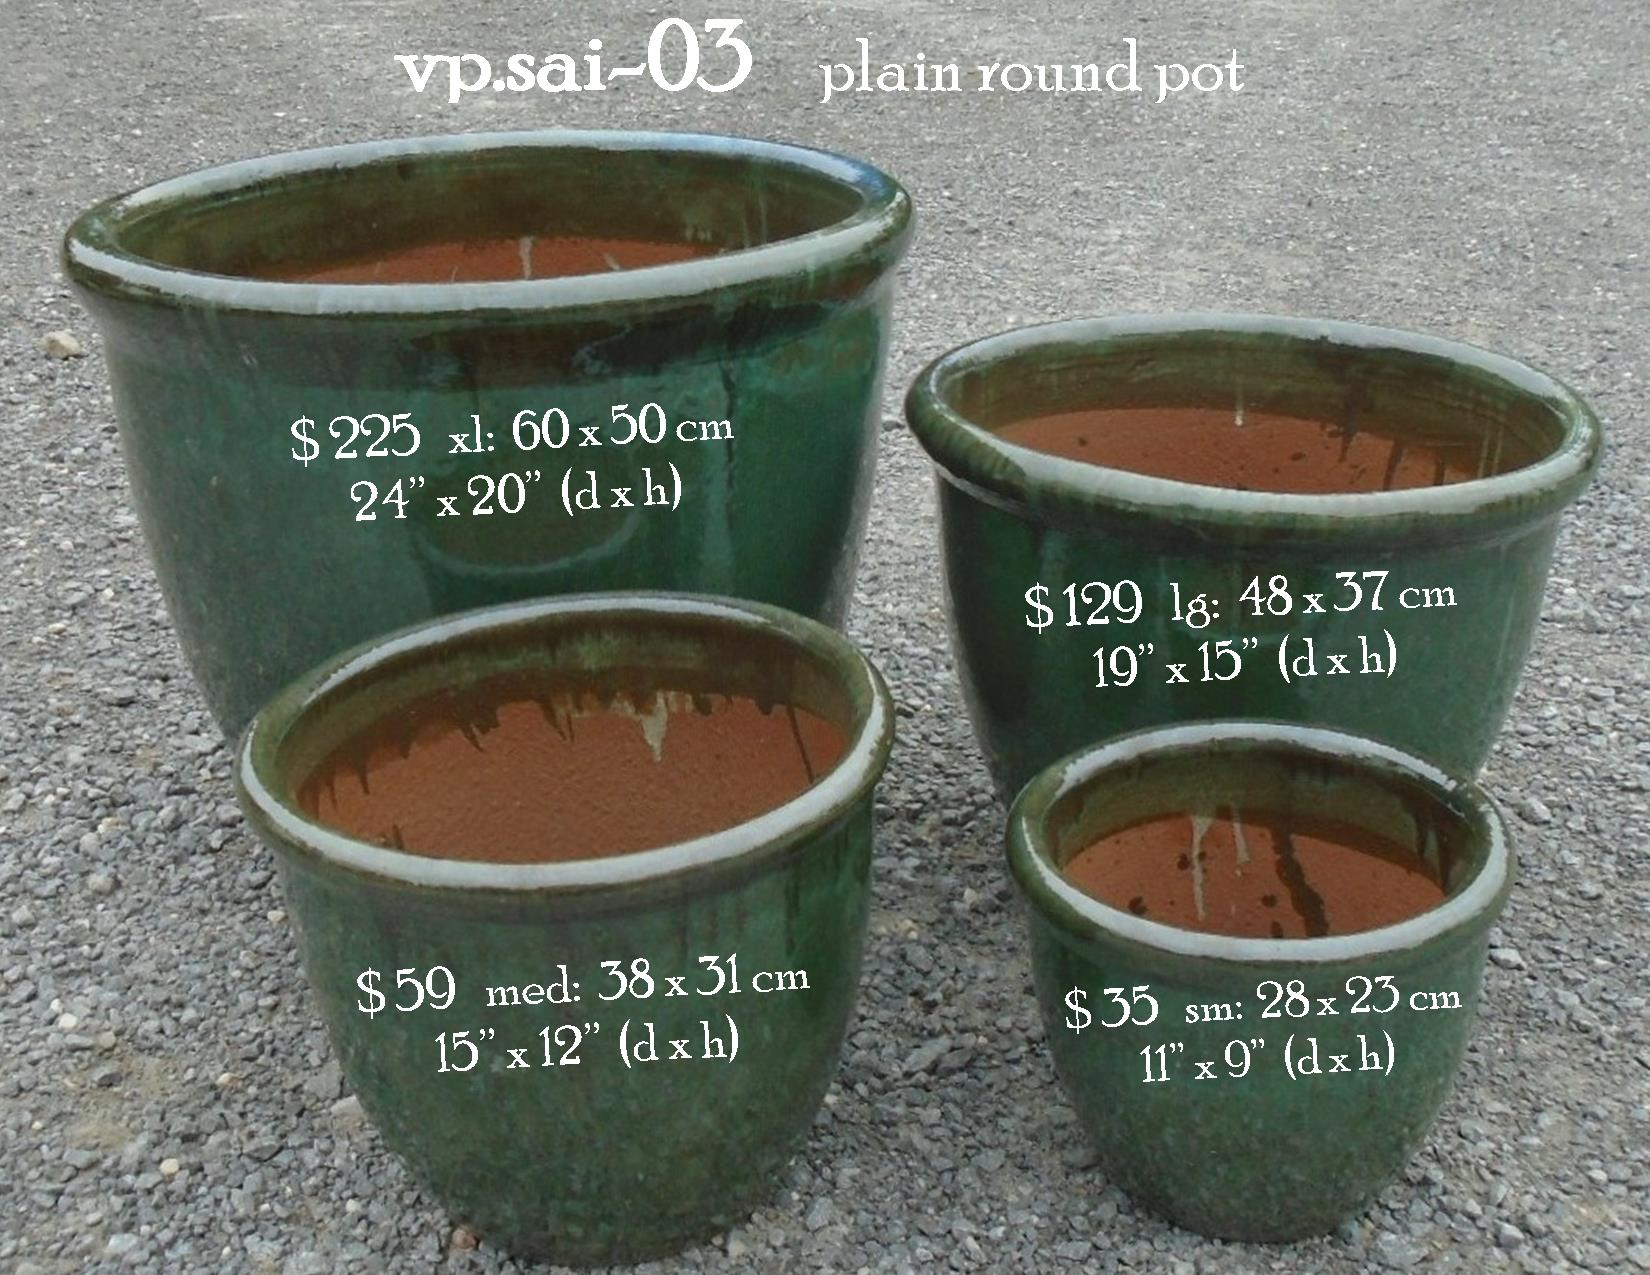 vp.sai-03    plain round pot